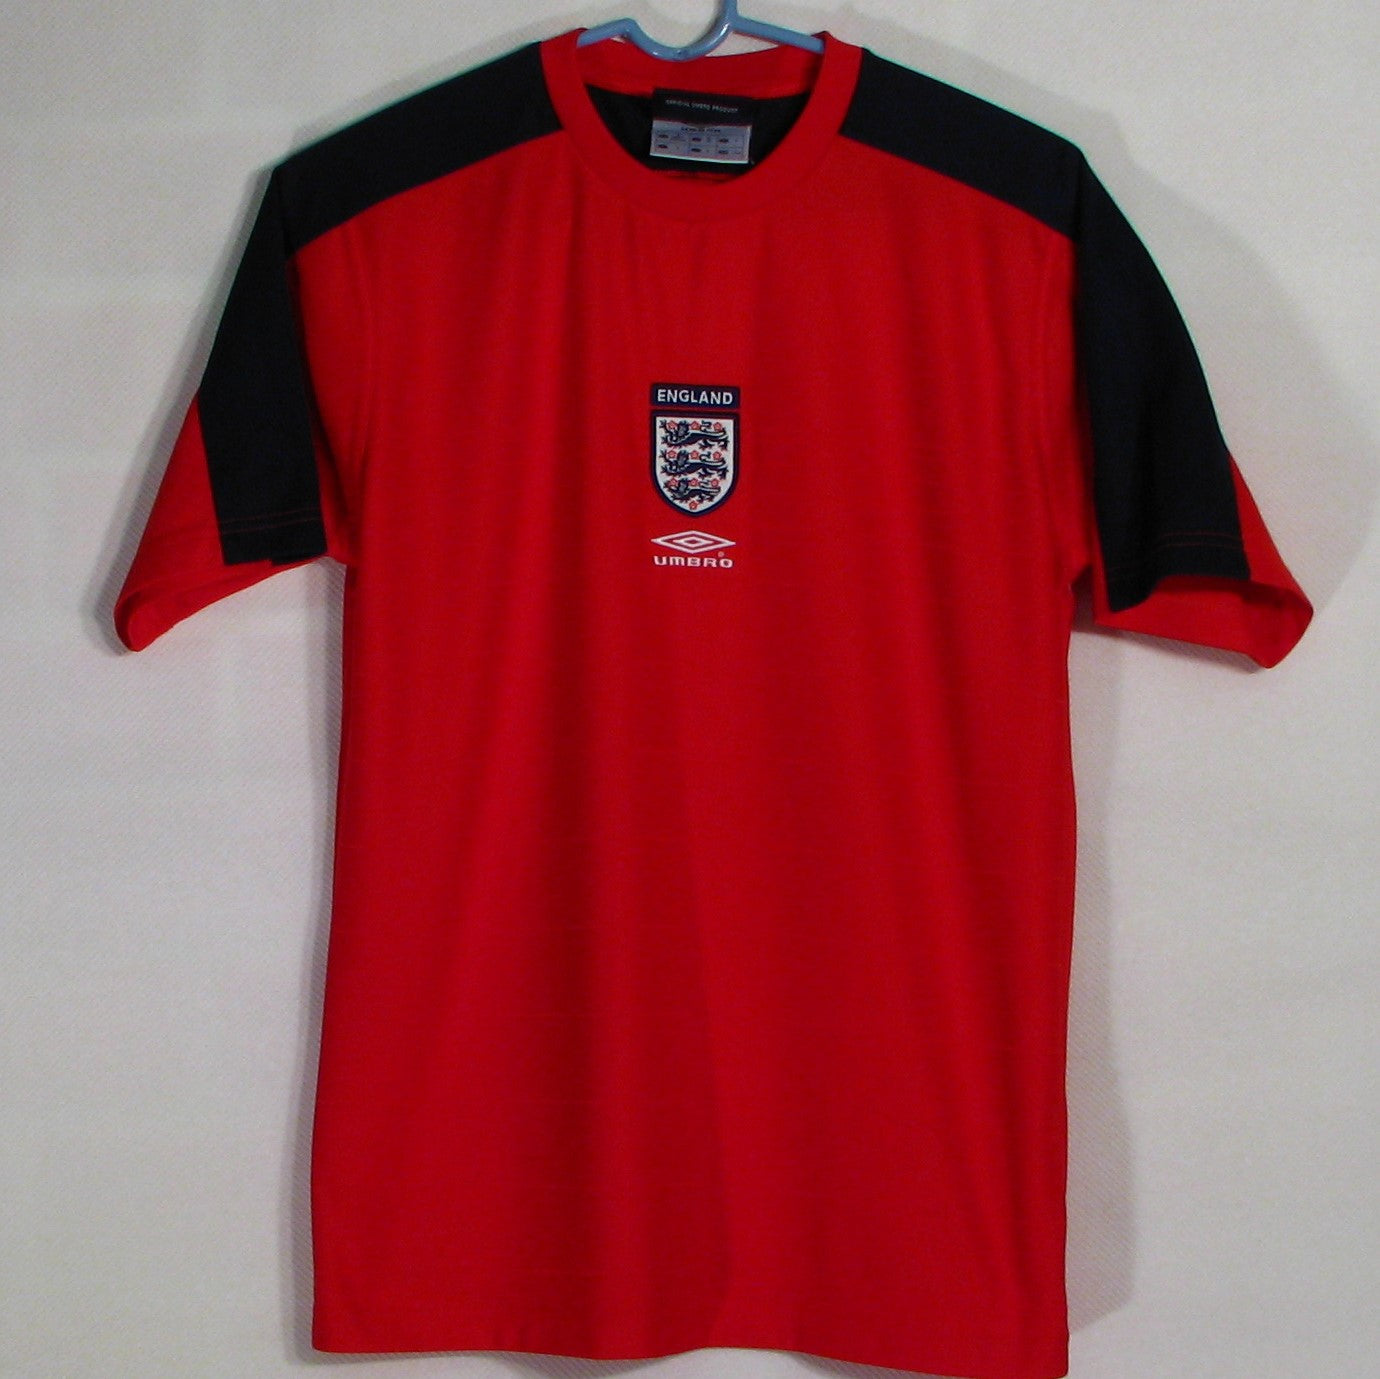 England Umbro Soccer Jersey